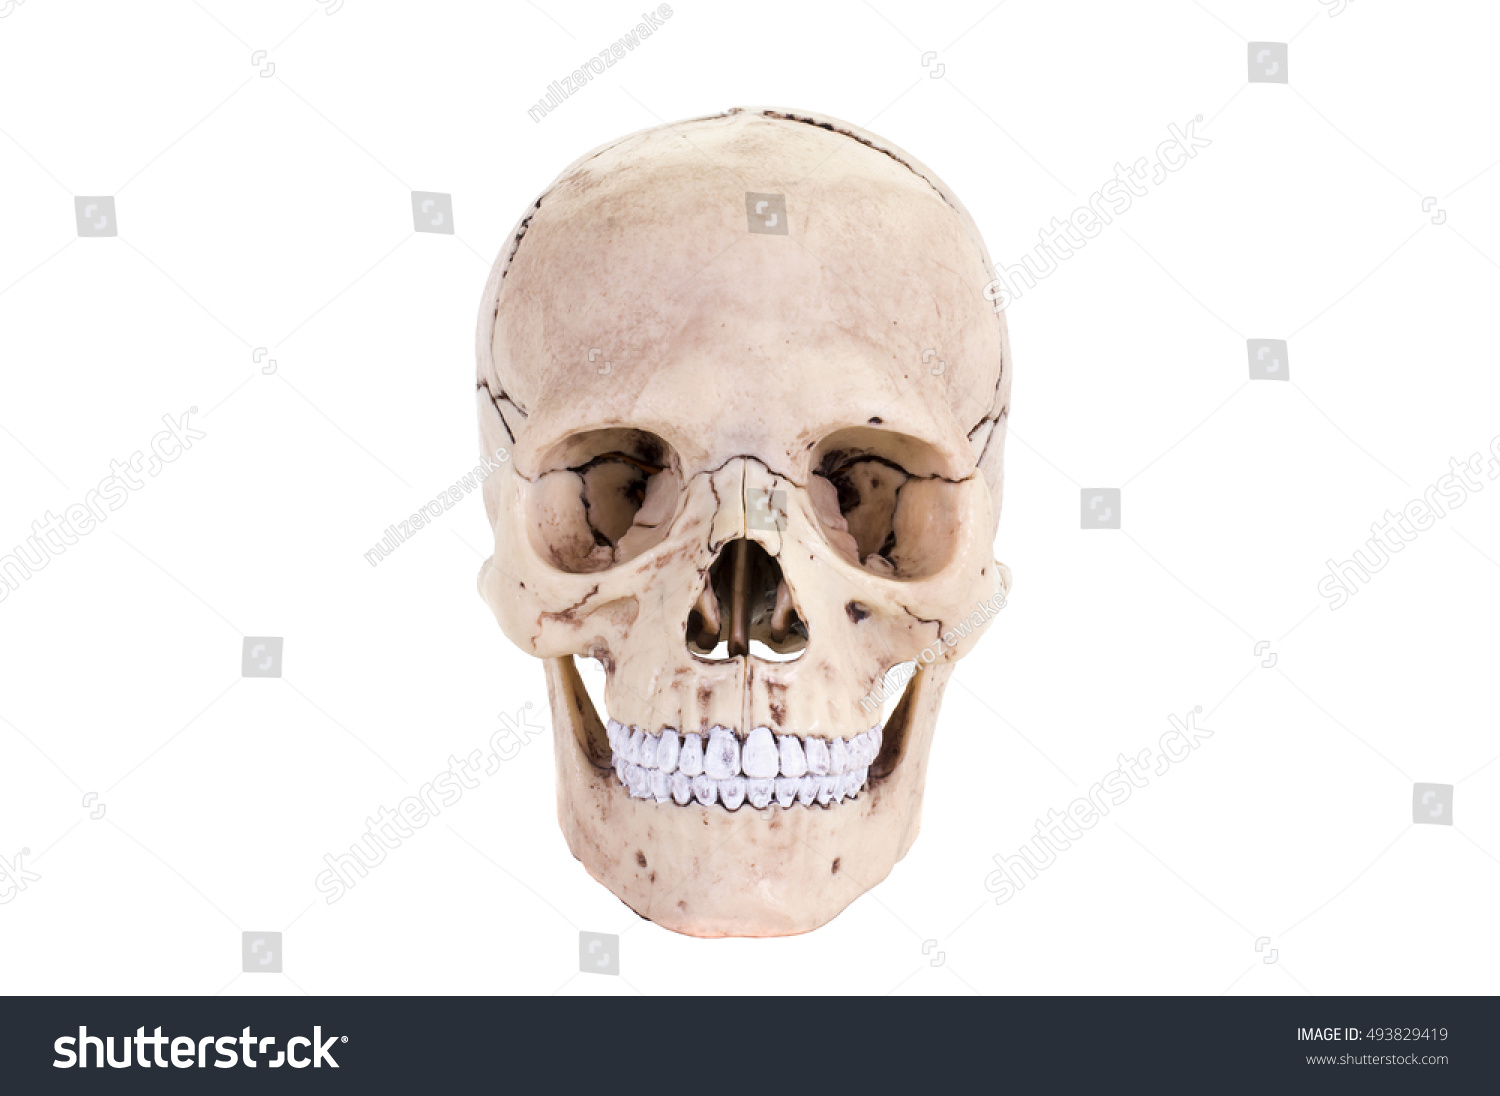 Human Skull Front Isolated On White Stock Photo Edit Now 493829419